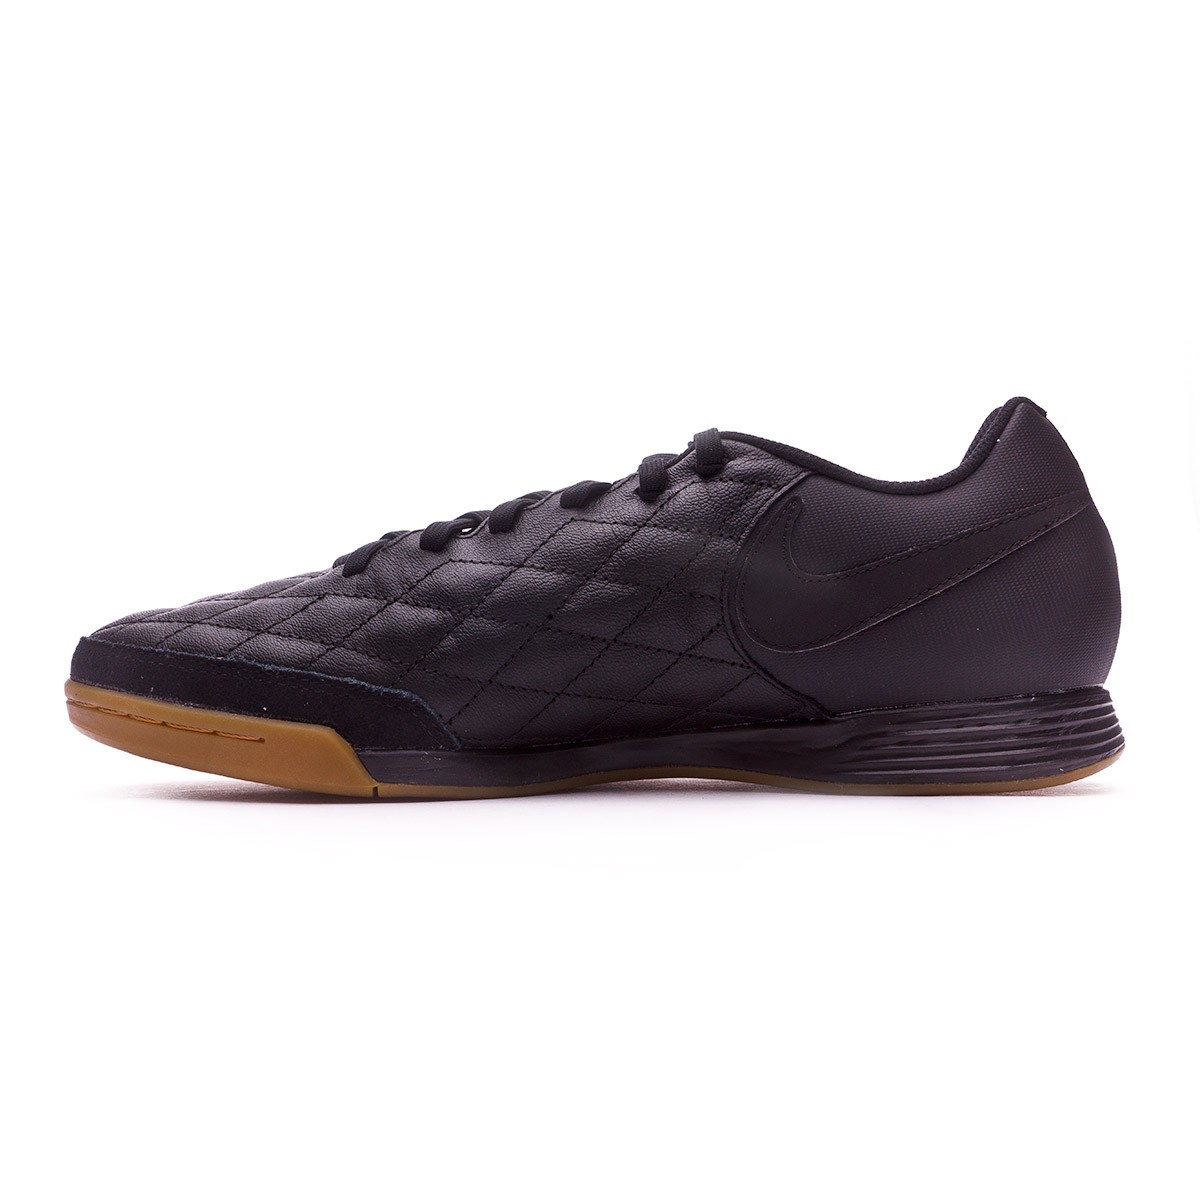 b9ae24af53e9 Futsal Boot Nike TiempoX Ligera IV 10R Paris IC Black-Metallic gold -  Football store Fútbol Emotion